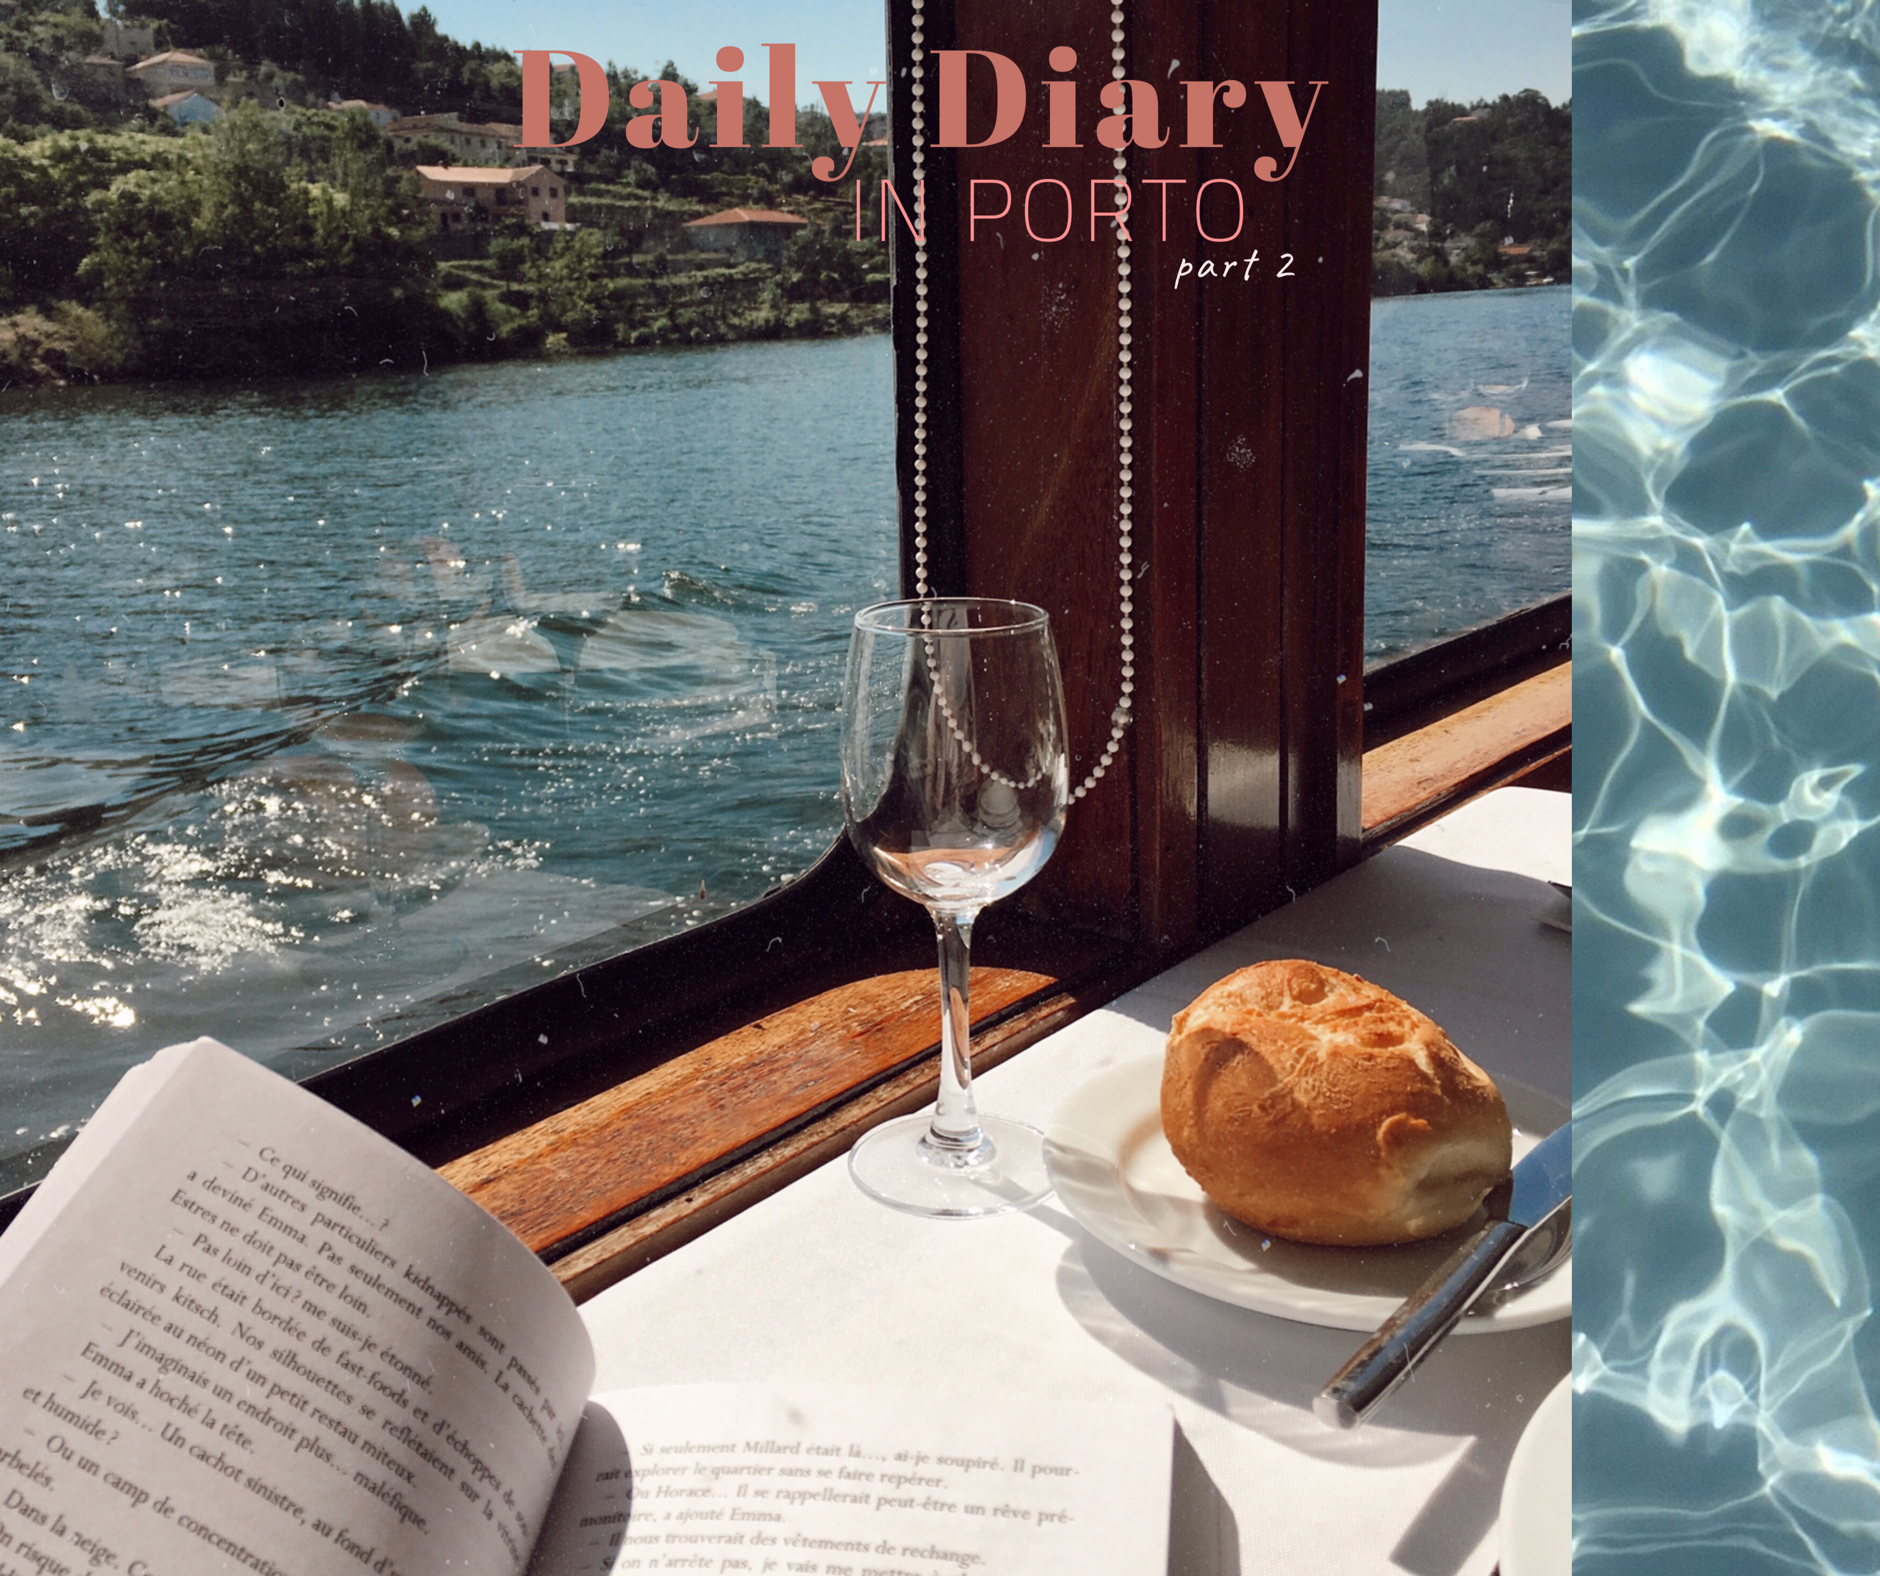 Daily diary in Porto (part 2)